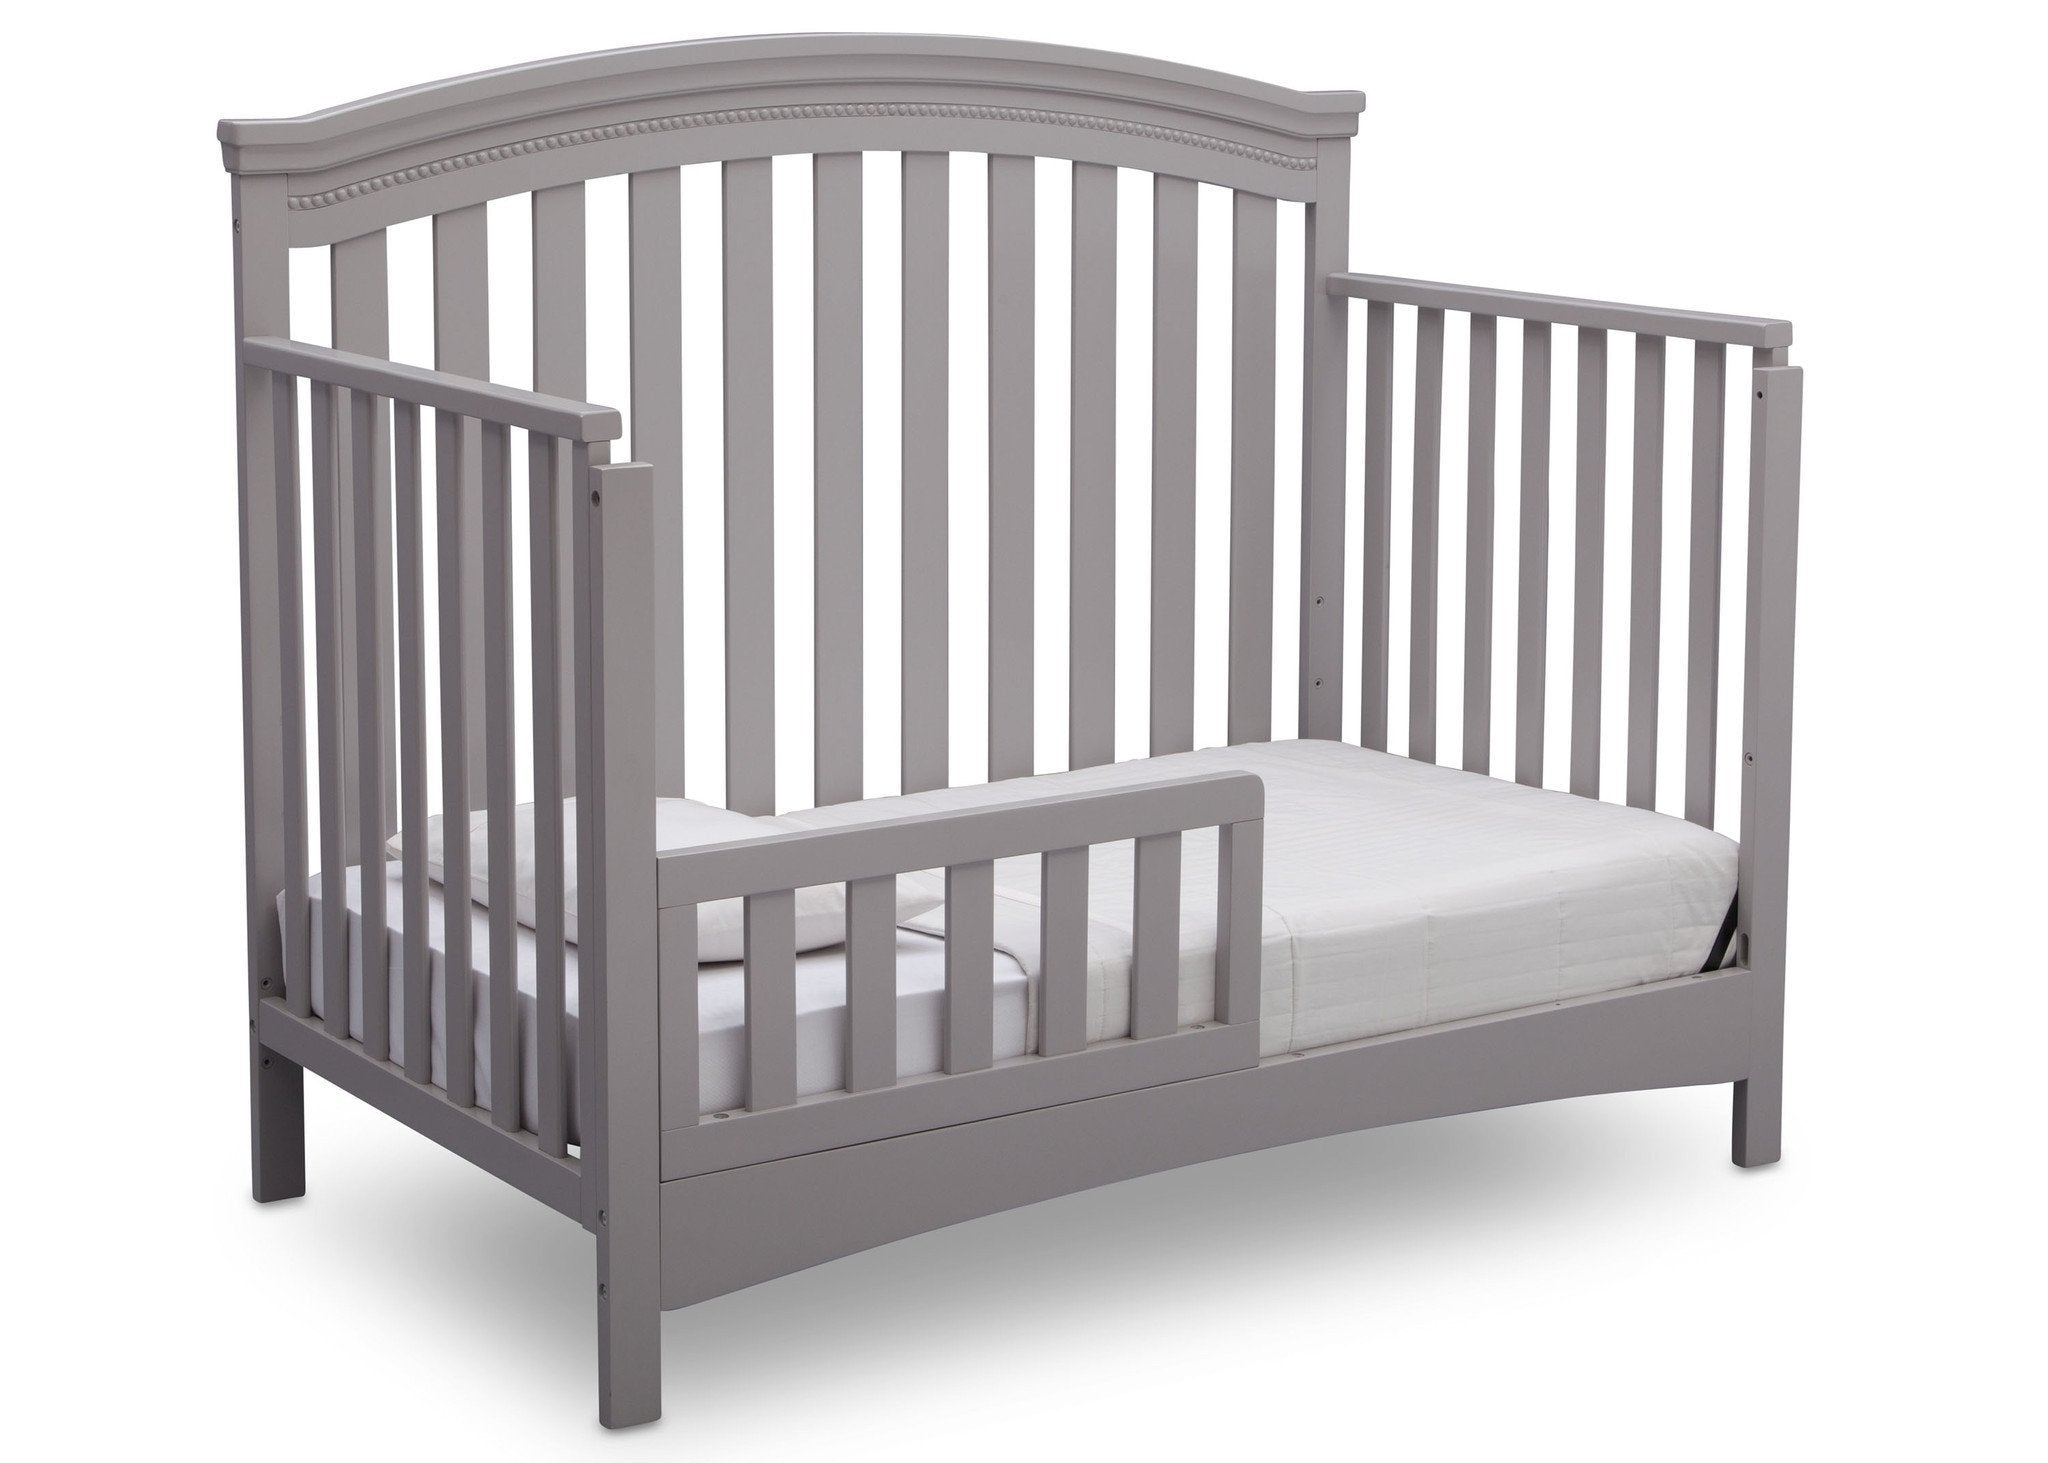 decorating guest cribs more ideas pin toddler baby check turn that into beds bedroom